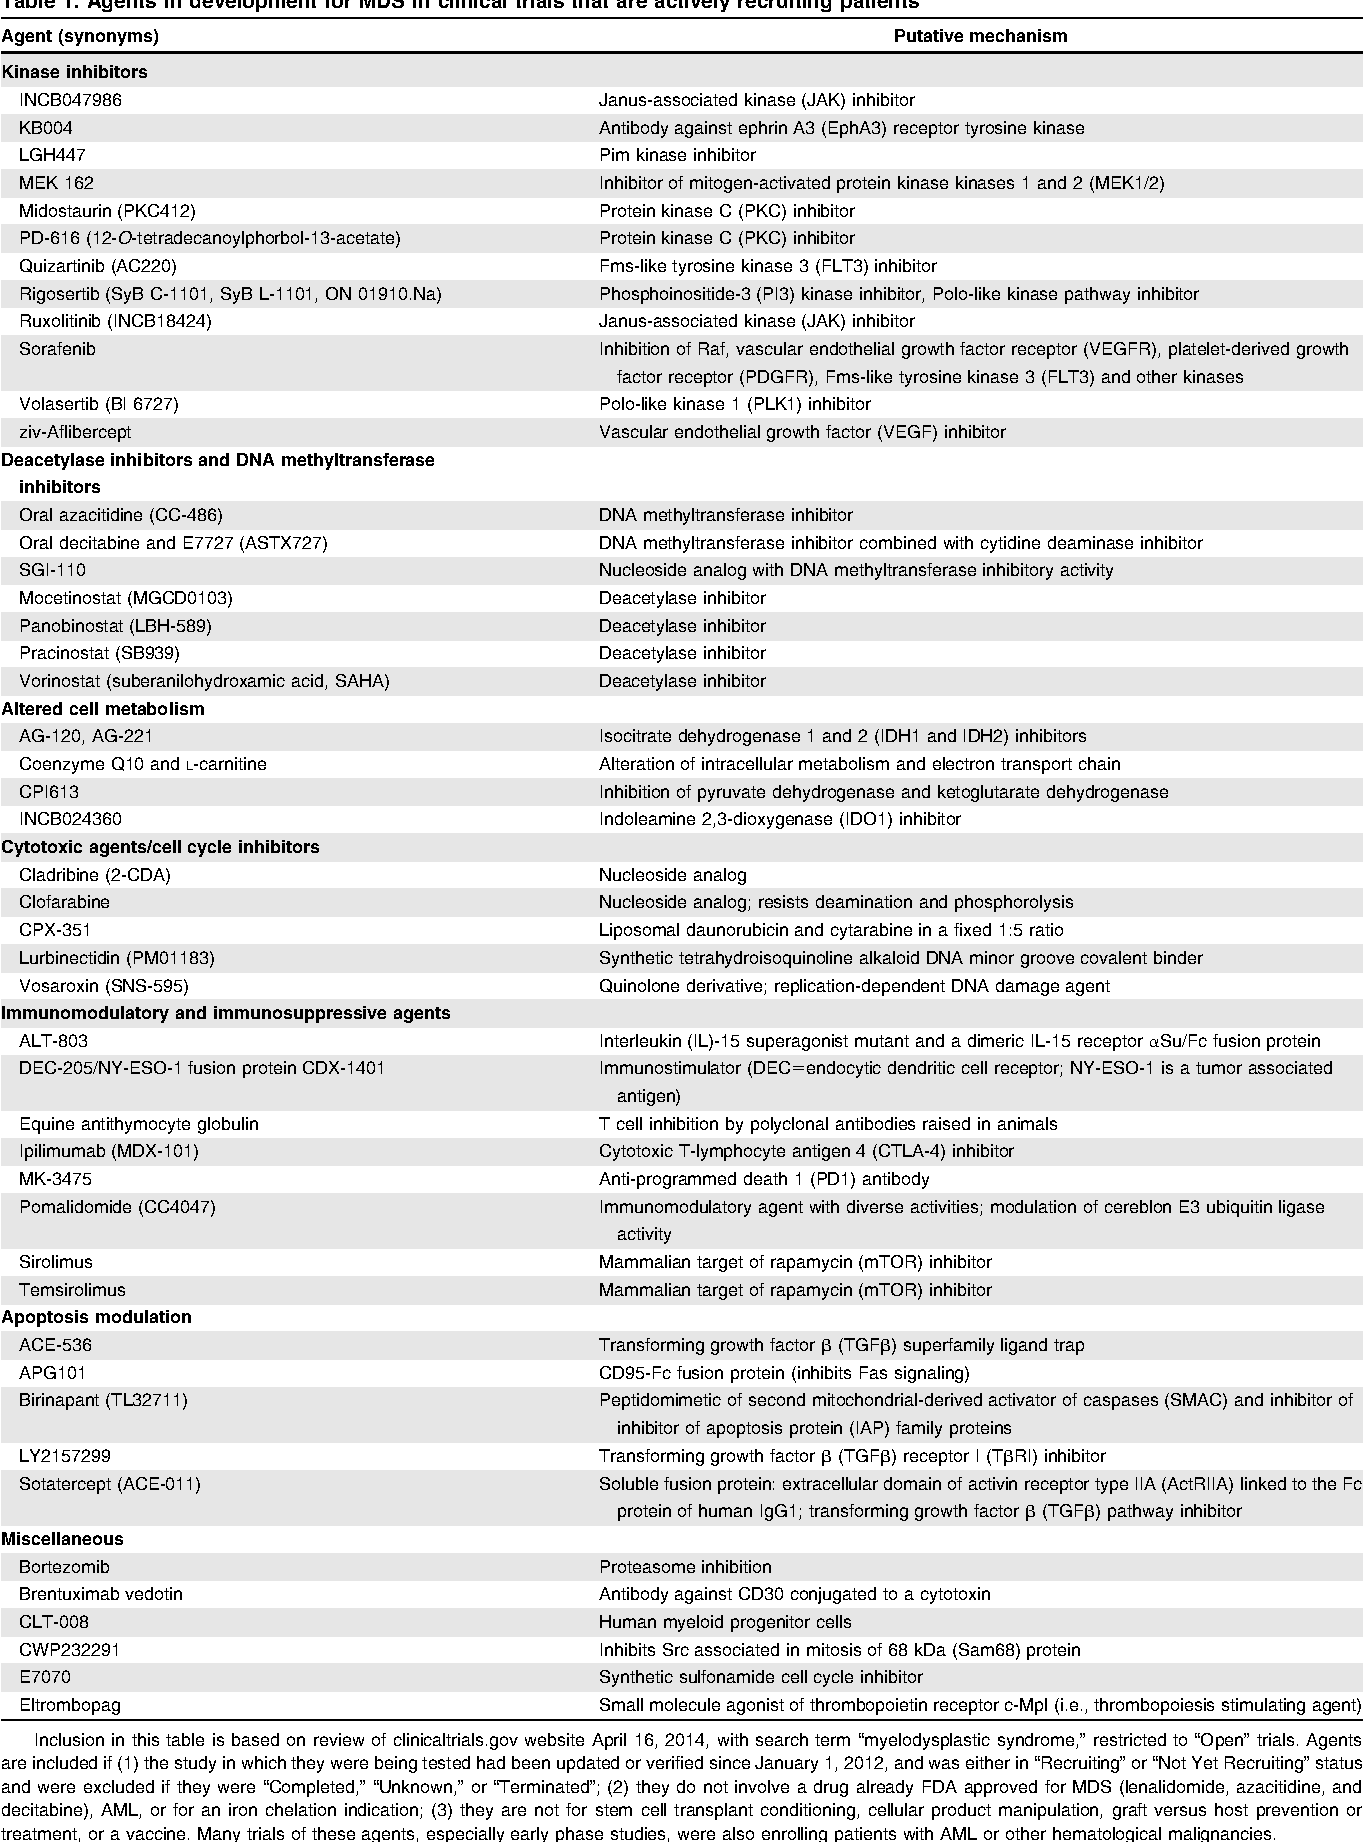 Table 1 From Recent Developments In Myelodysplastic Syndromes Types Of White Blood Cells Diagram Treatment Agents Development For Mds Clinical Trials That Are Actively Recruiting Patients